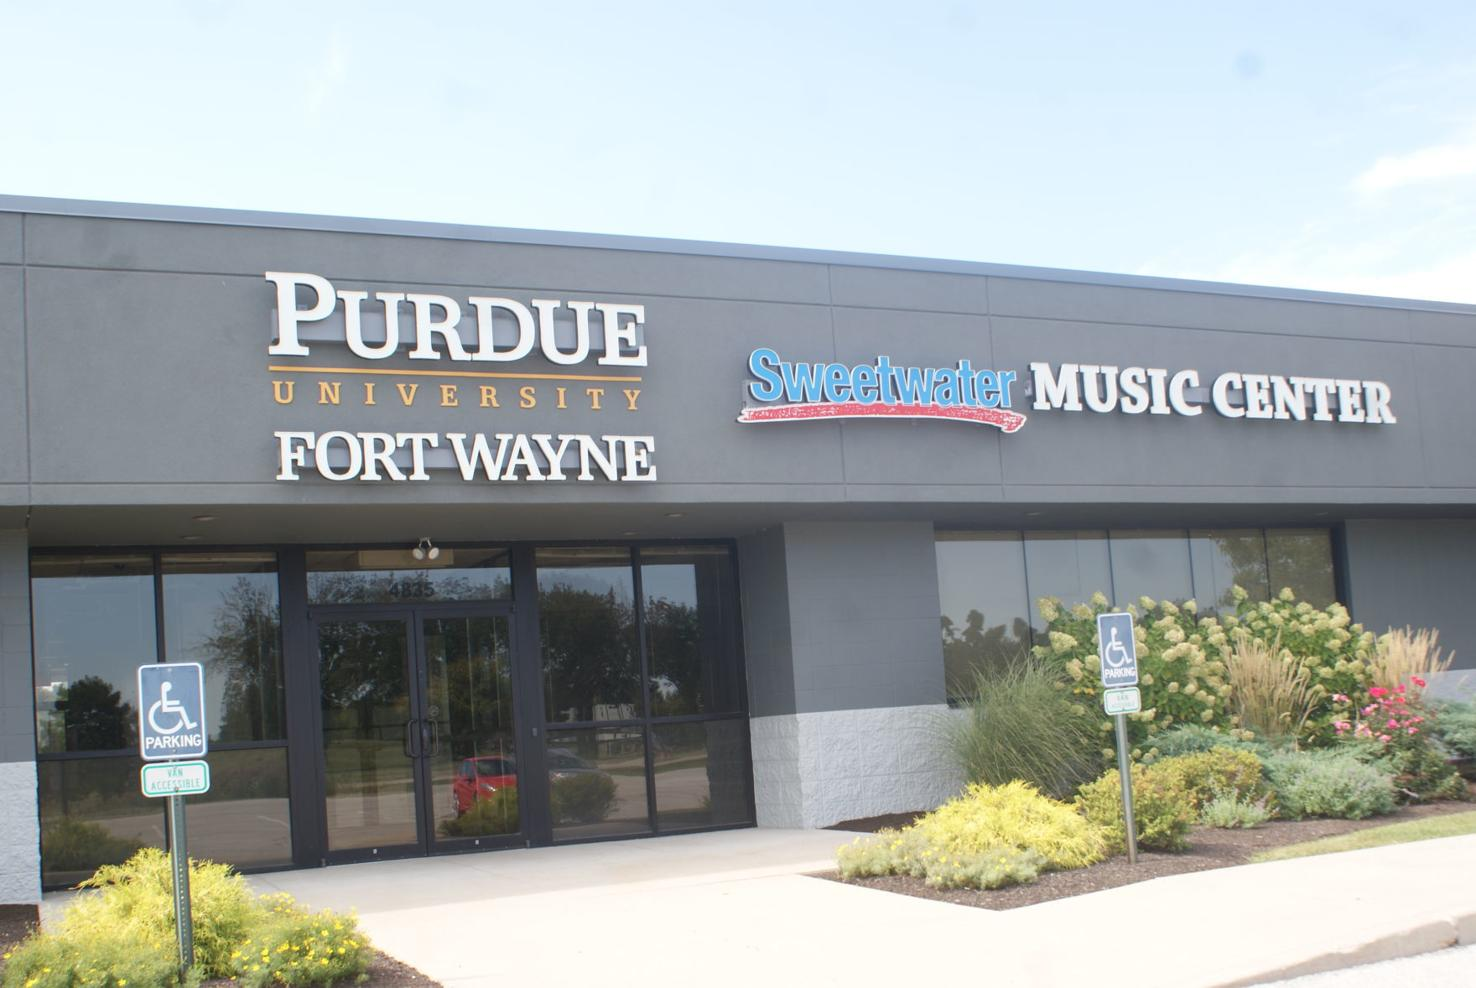 Purdue Fort Wayne Sweetwater Music Center